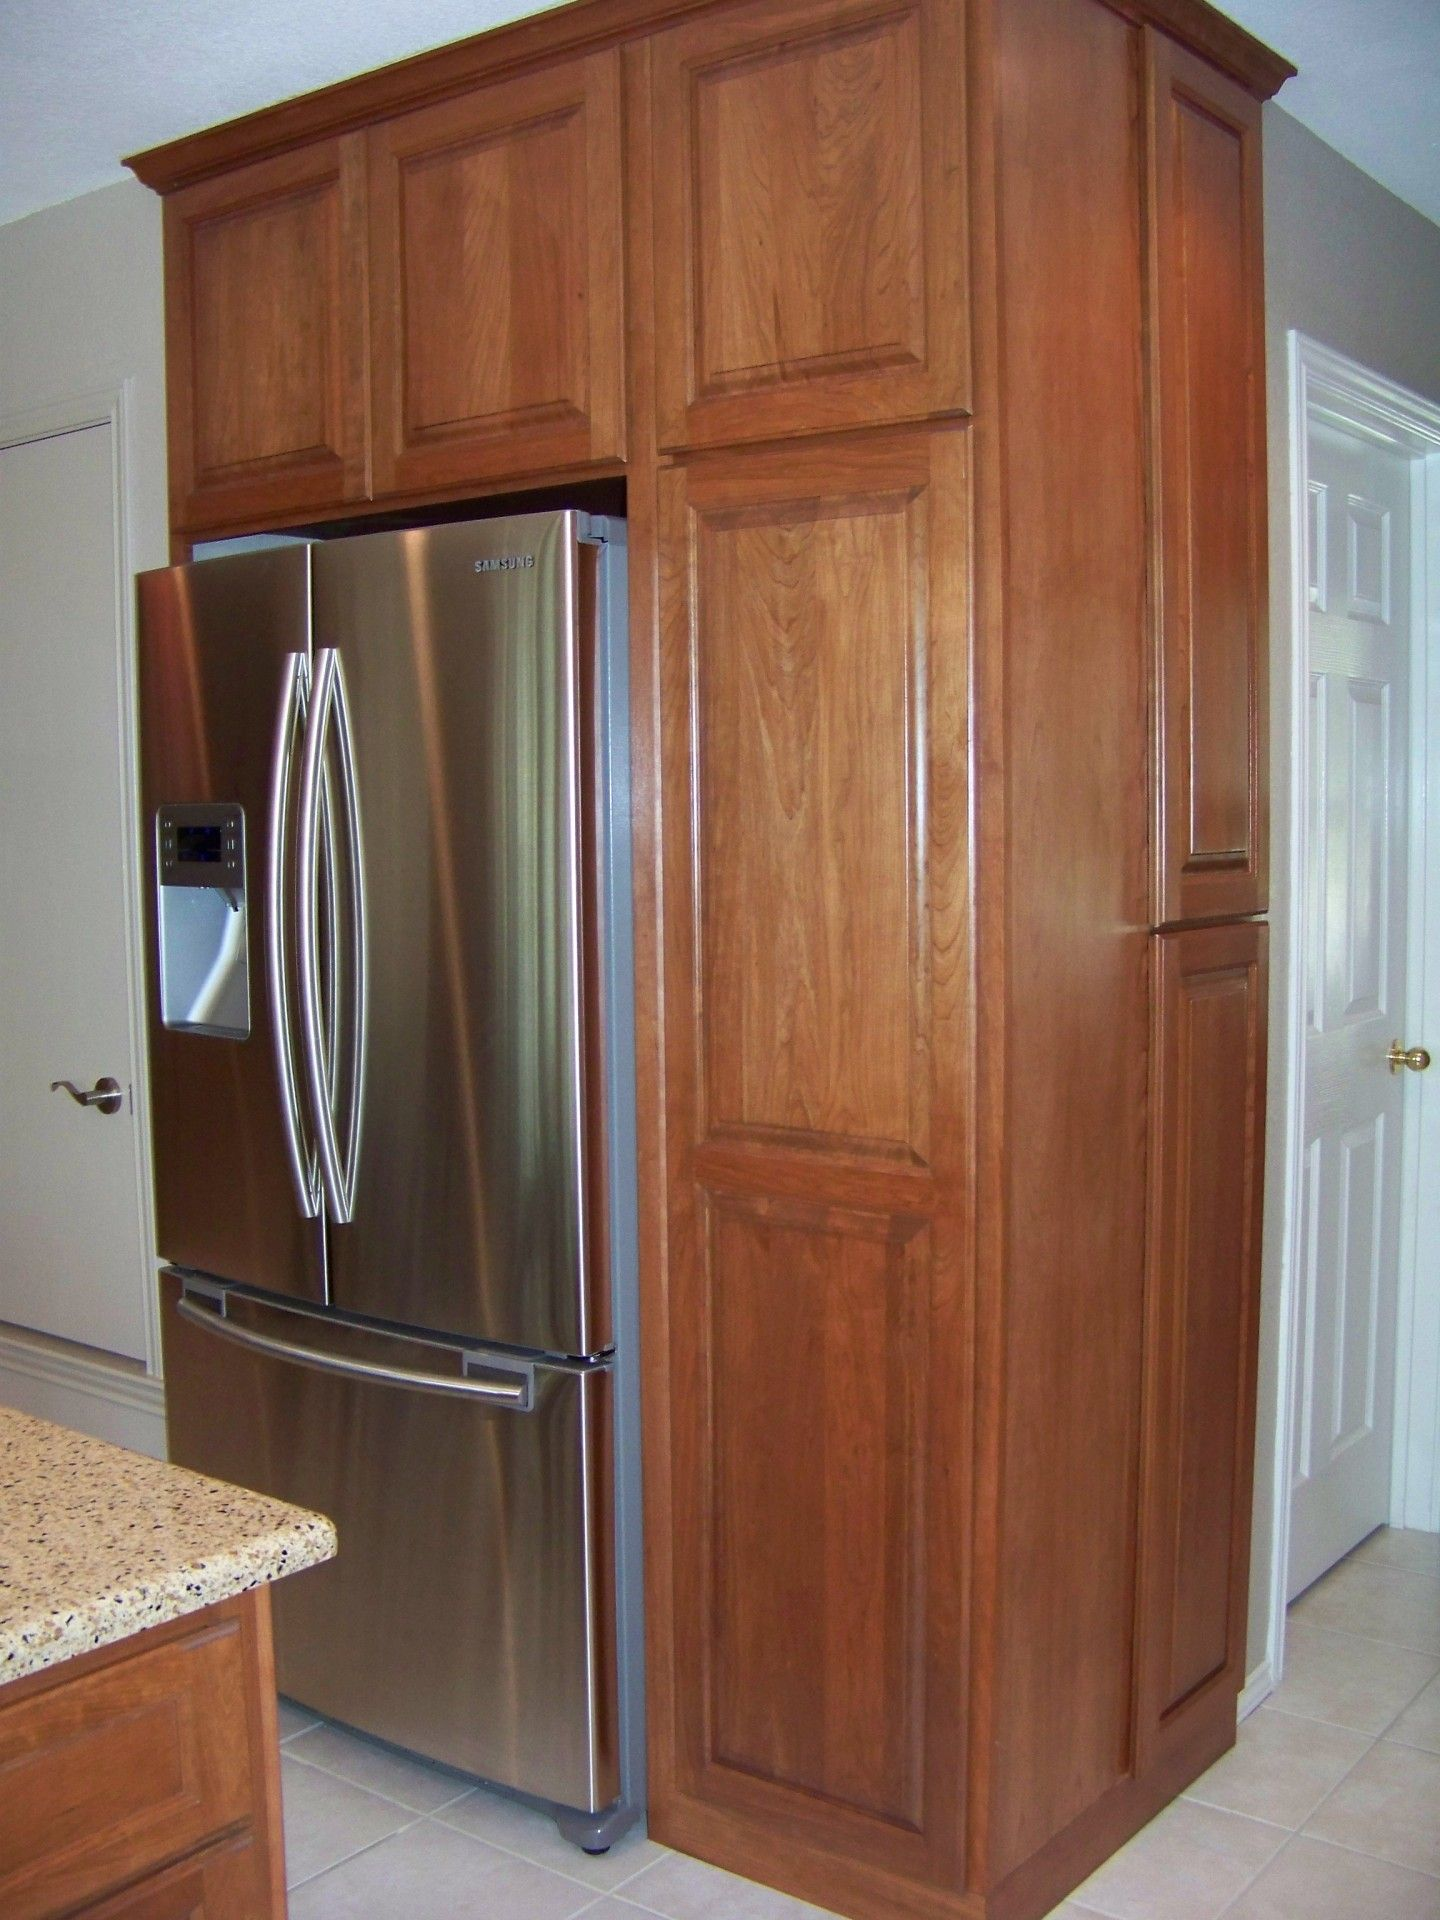 Delicieux Built In Refrigerator Cabinet Surround